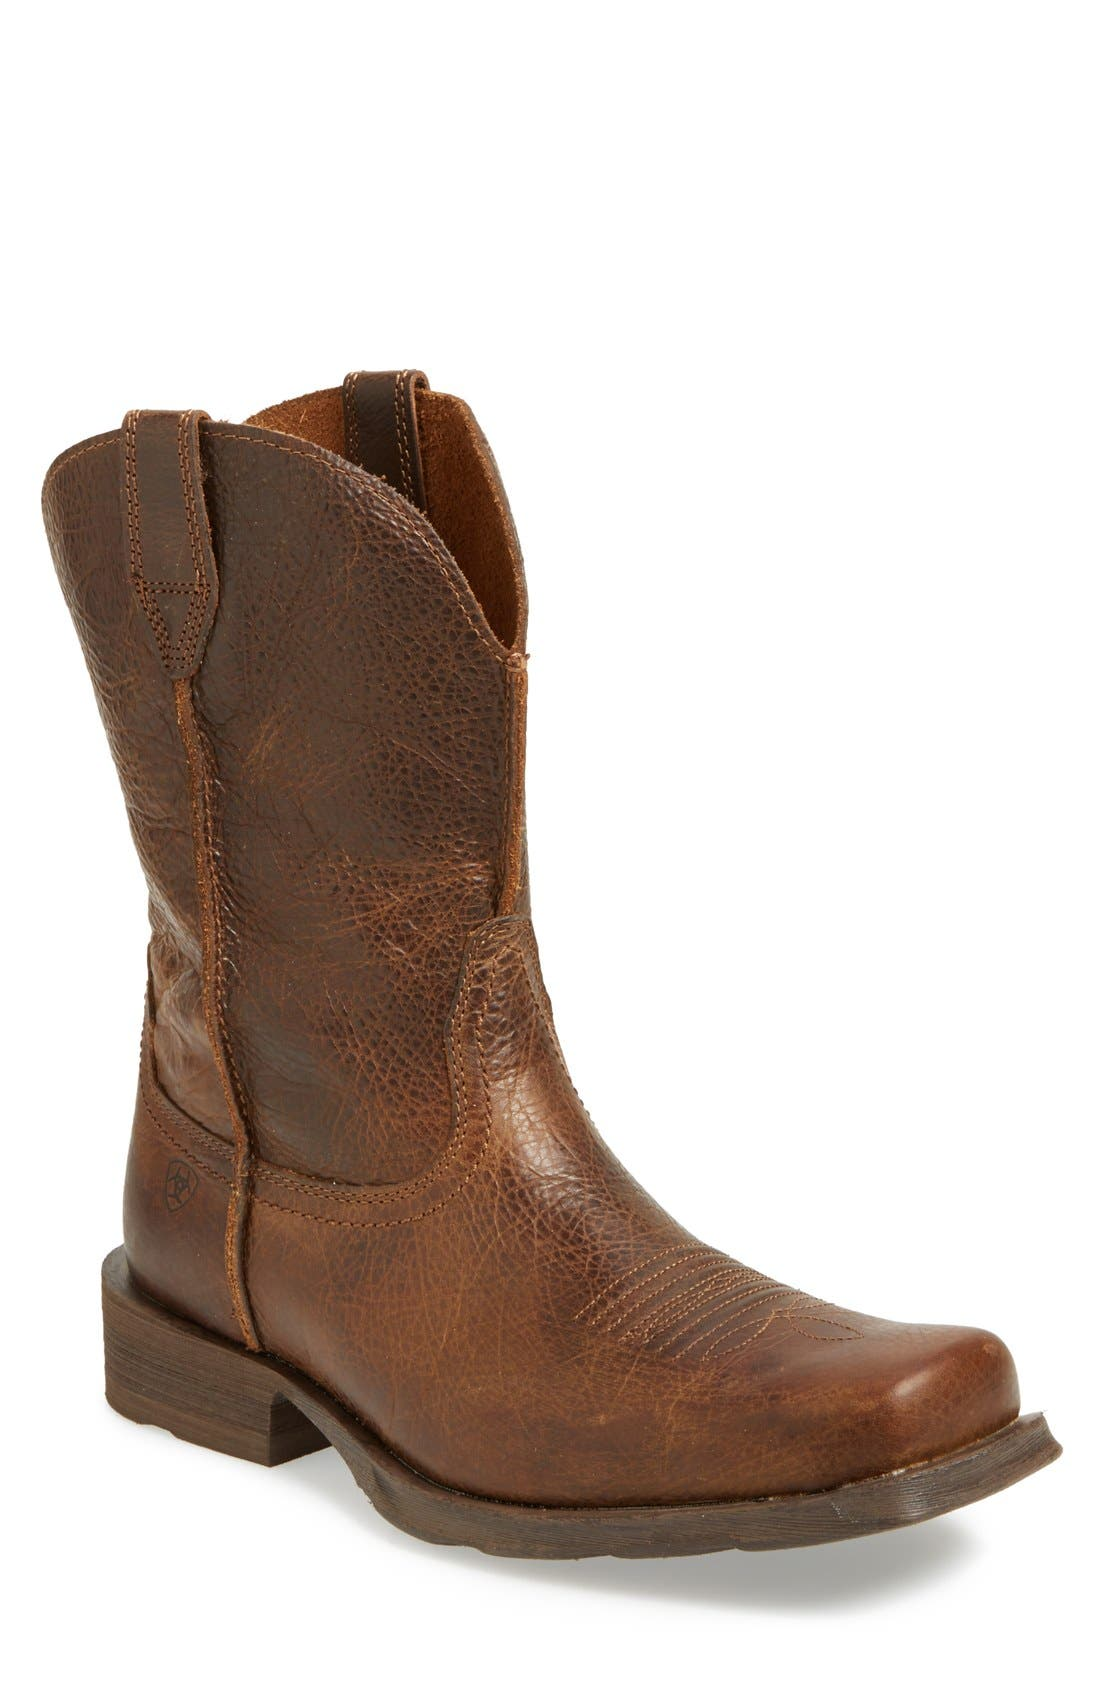 Alternate Image 1 Selected - Ariat 'Rambler' Square Toe Leather Cowboy Boot (Men)